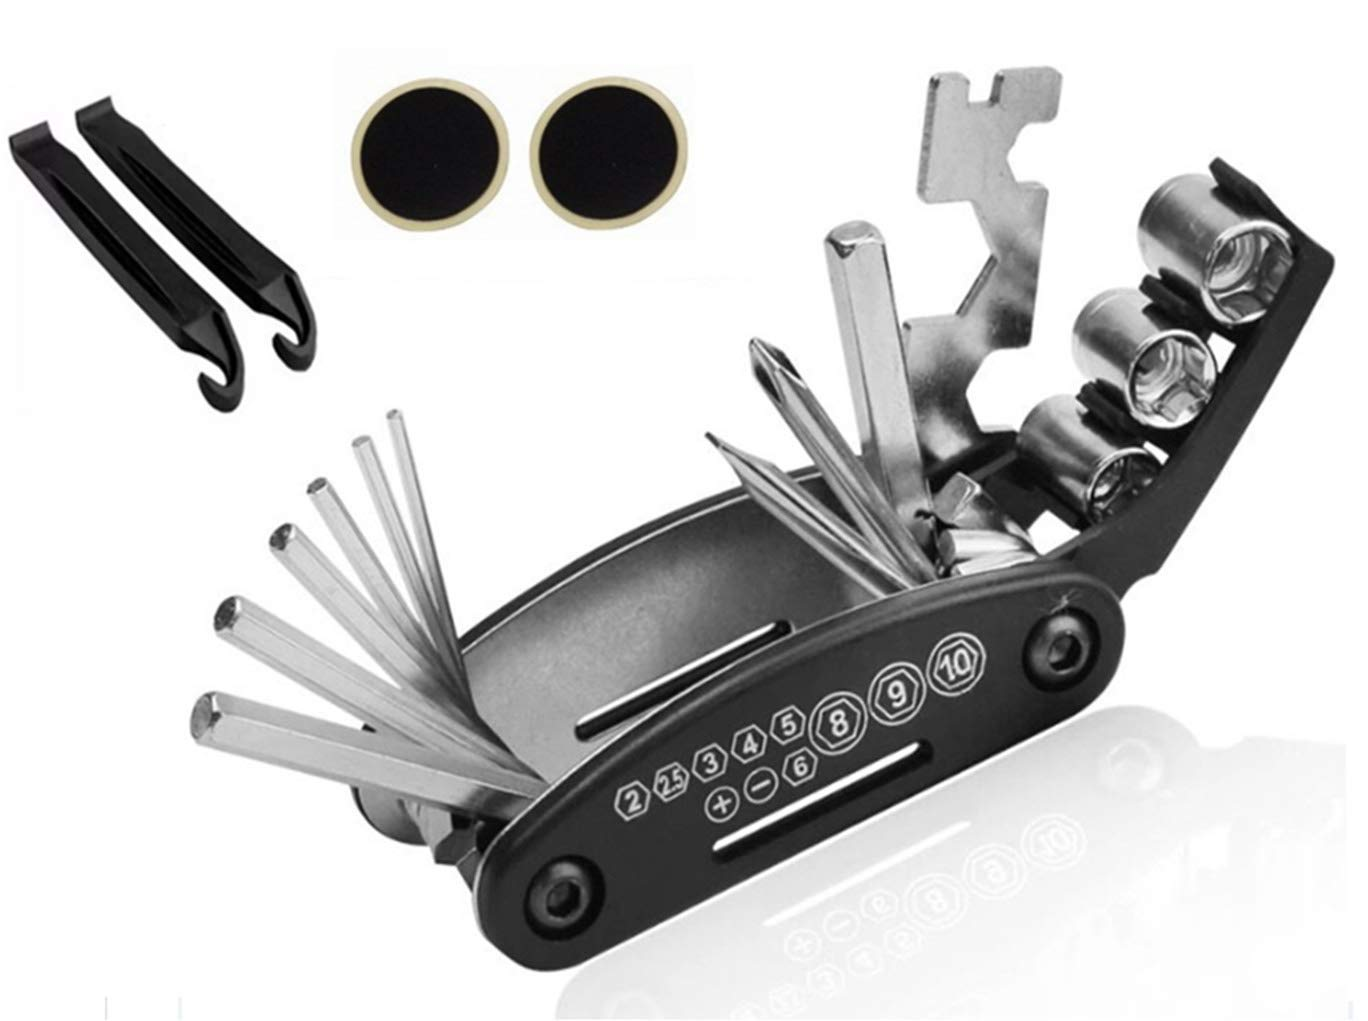 OJEALY Bike Repair Tool Kit Cycling Repair Kit 16 in 1 Multifunction Bicycle Repair Tools with Glueless Tire Repair Patches Tire Pry Bars Rods Black